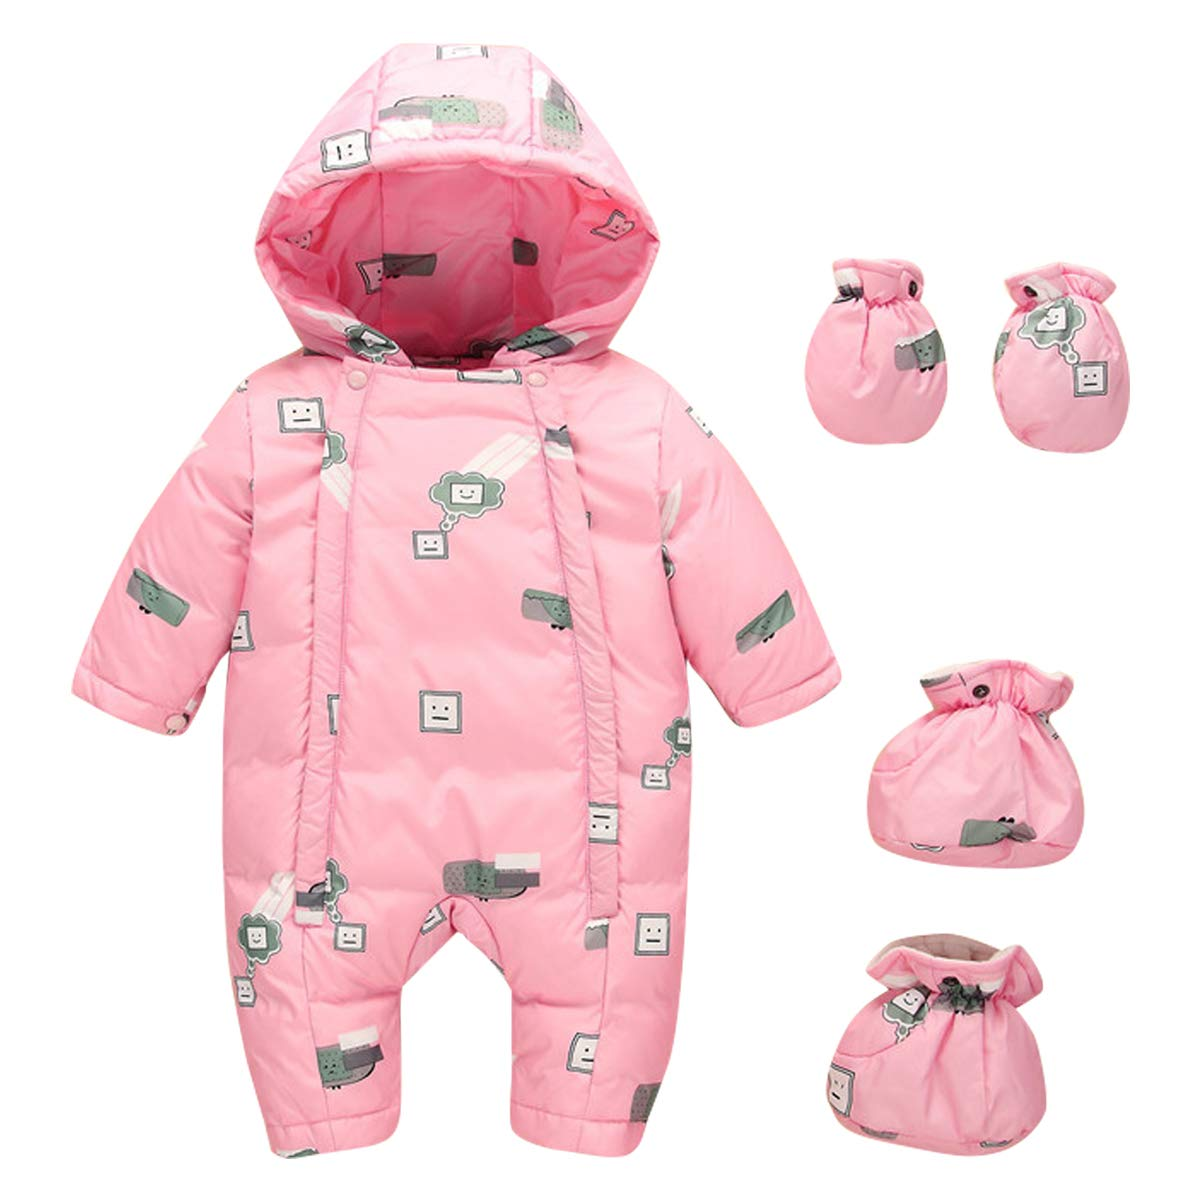 Kanodan Baby Boys Girls Down Jumpsuit Romper Winter Warm Onesie Romper 0-2 Years